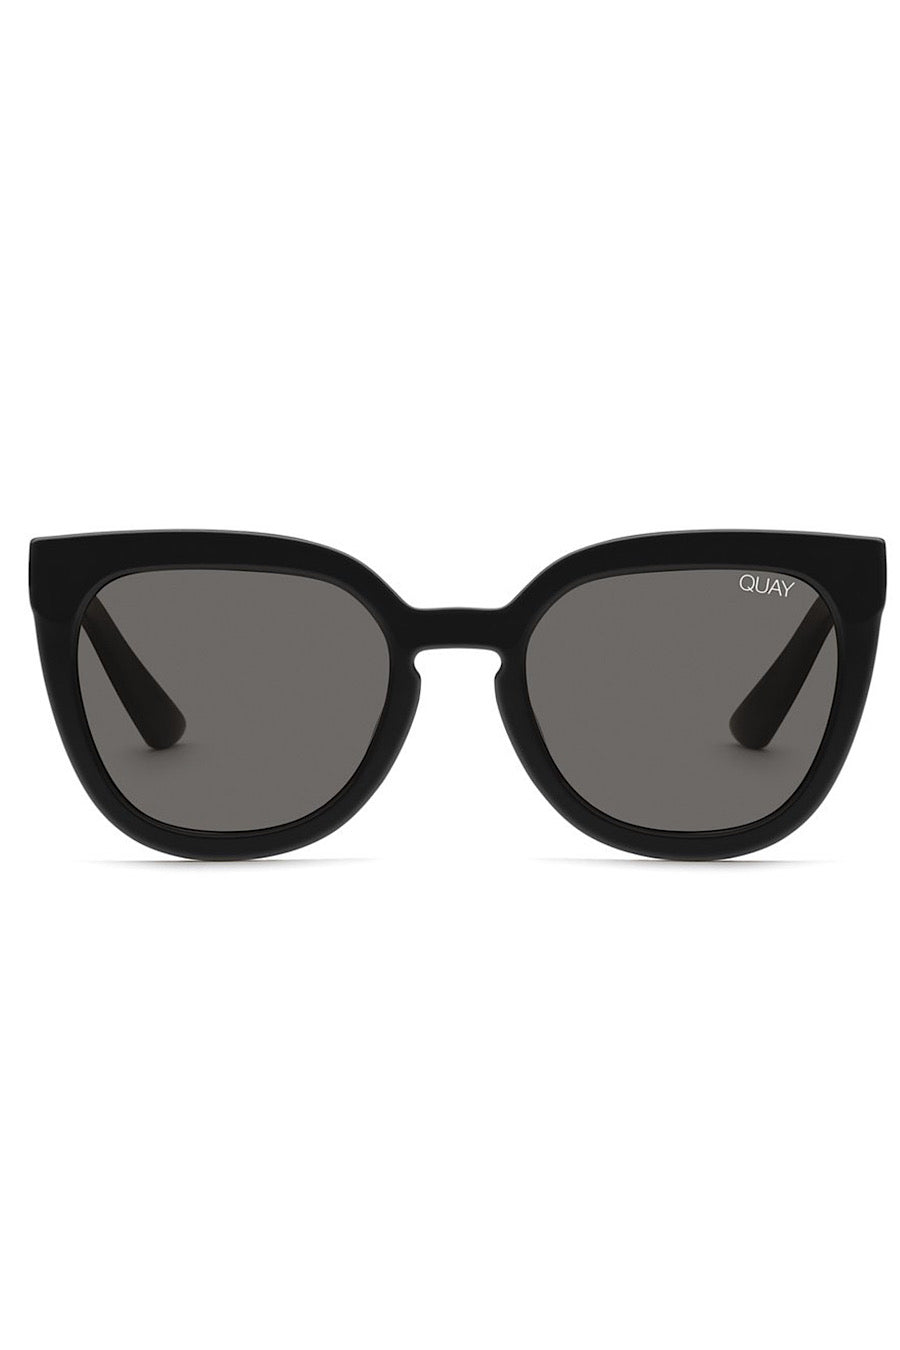 Quay NOOSA Cat Eye Sunglasses